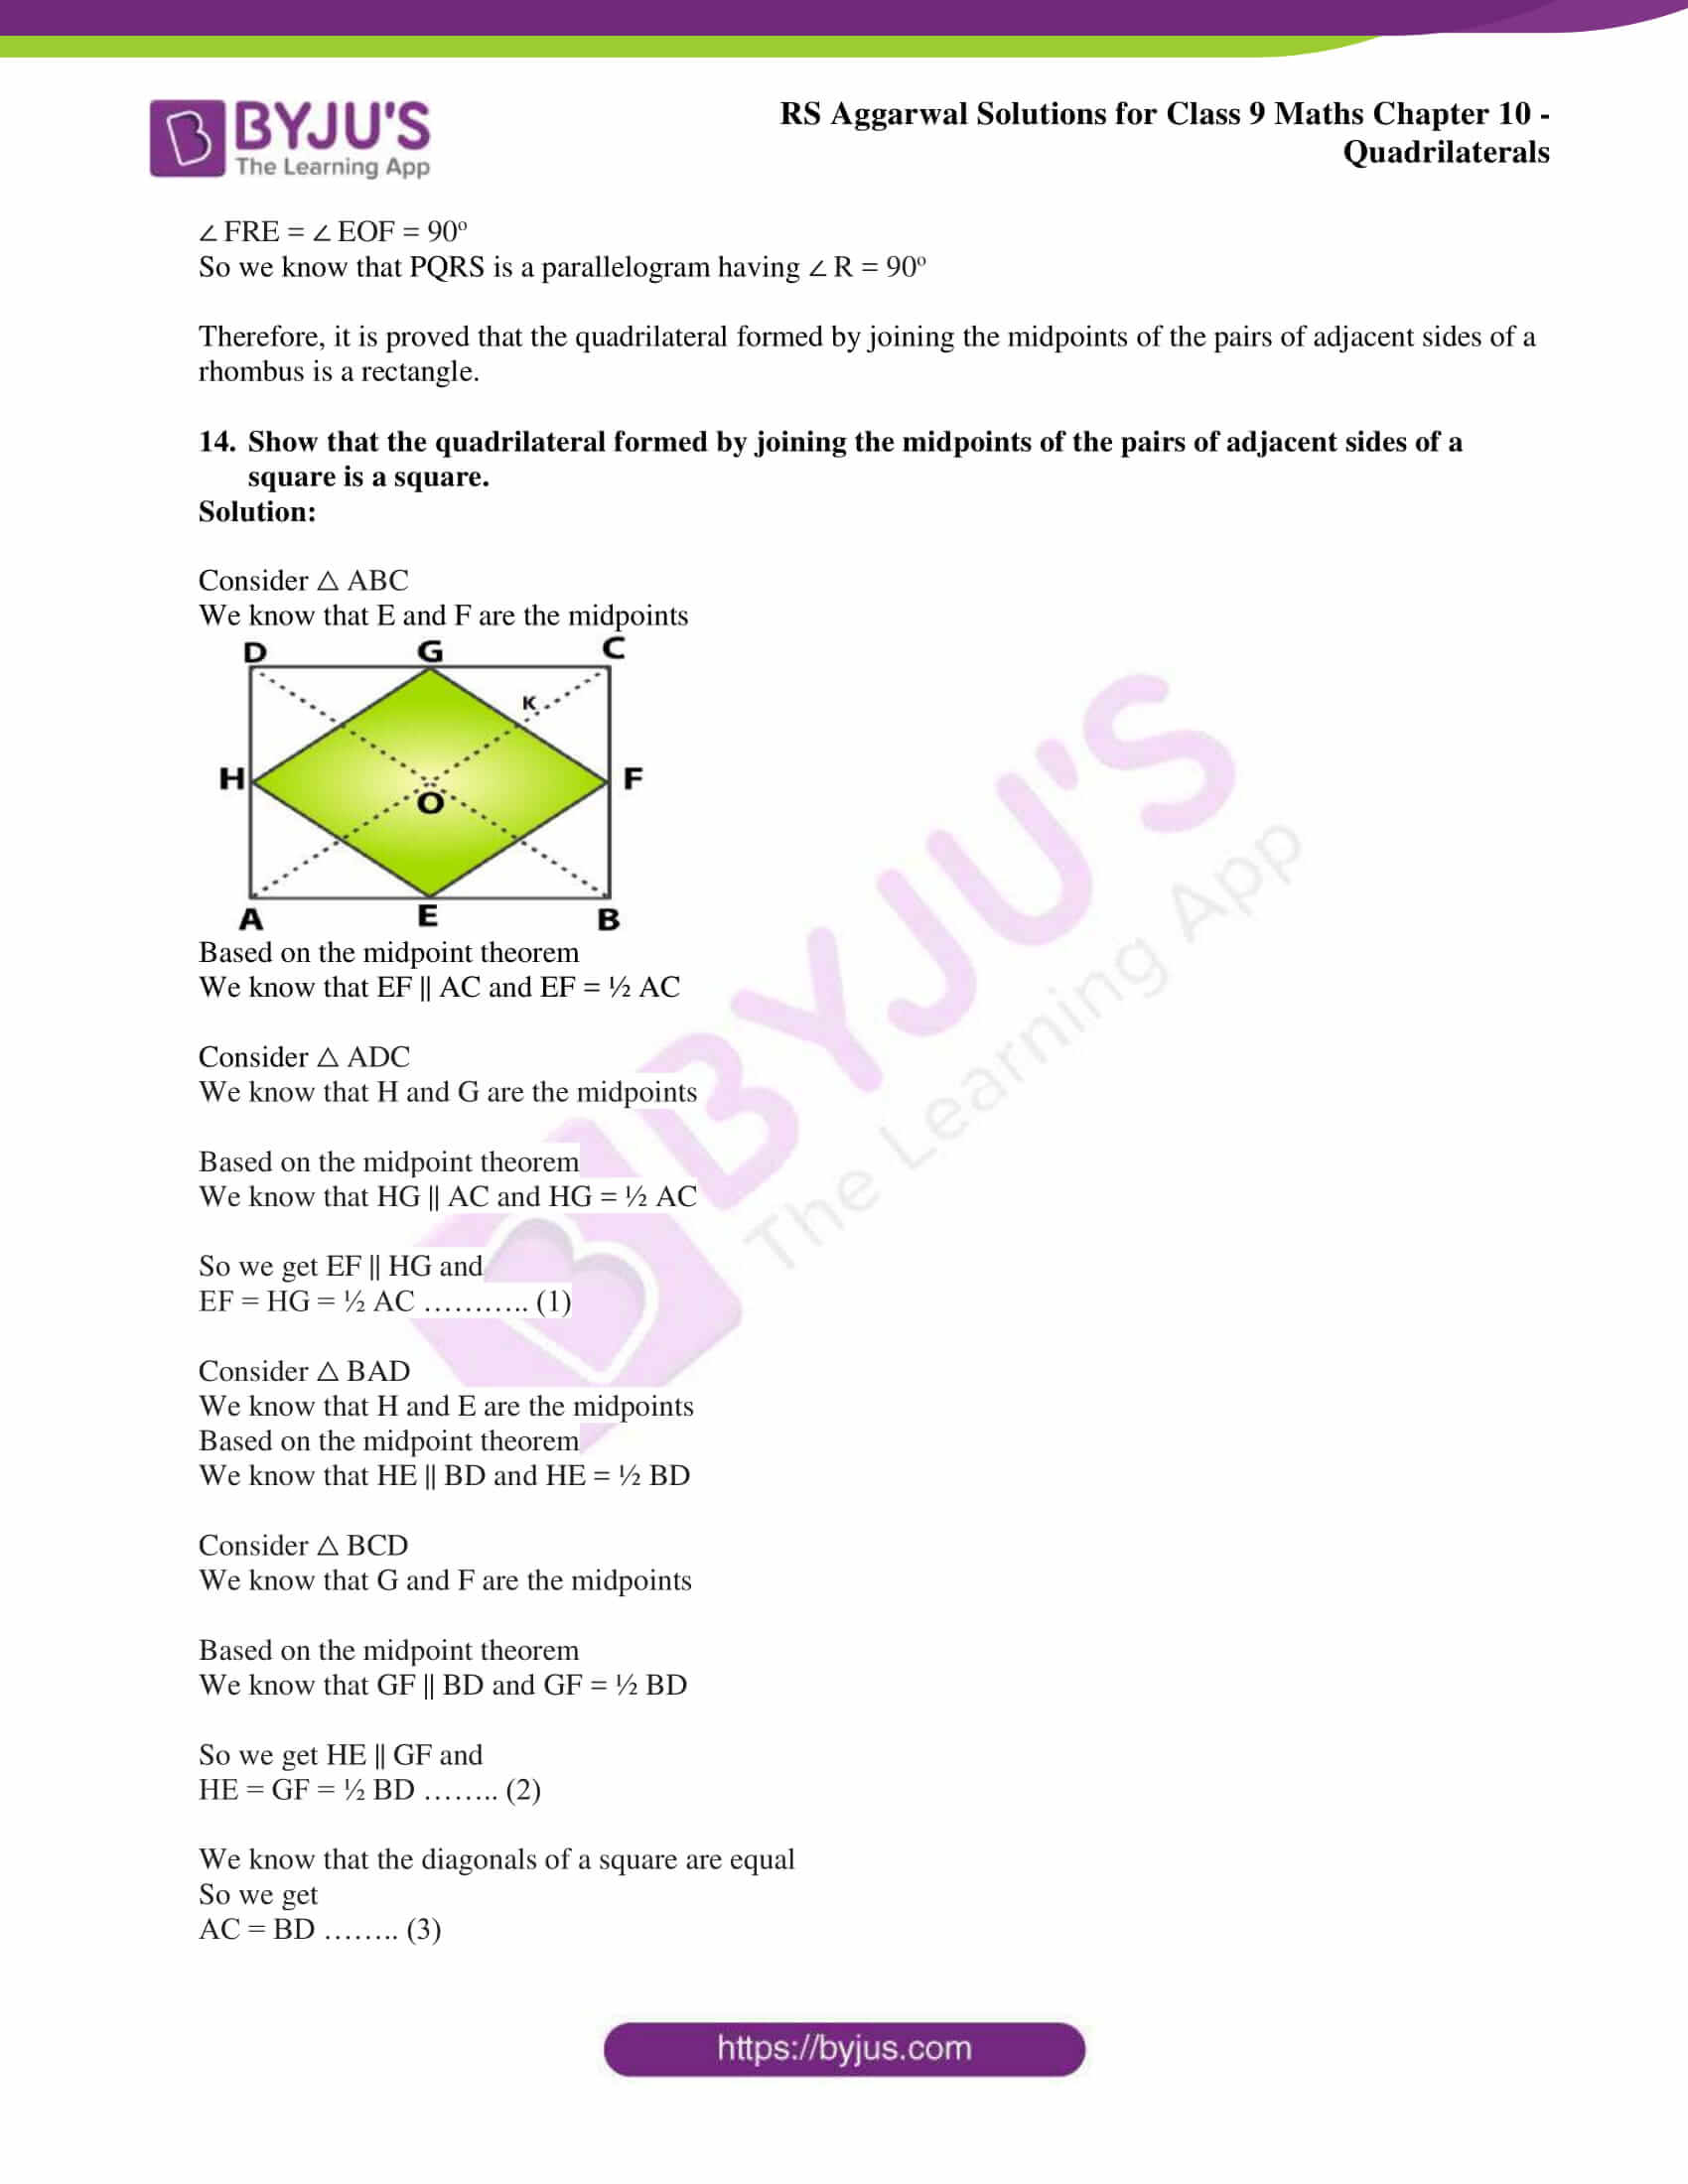 rs aggarwal solution class 9 maths chapter 10C